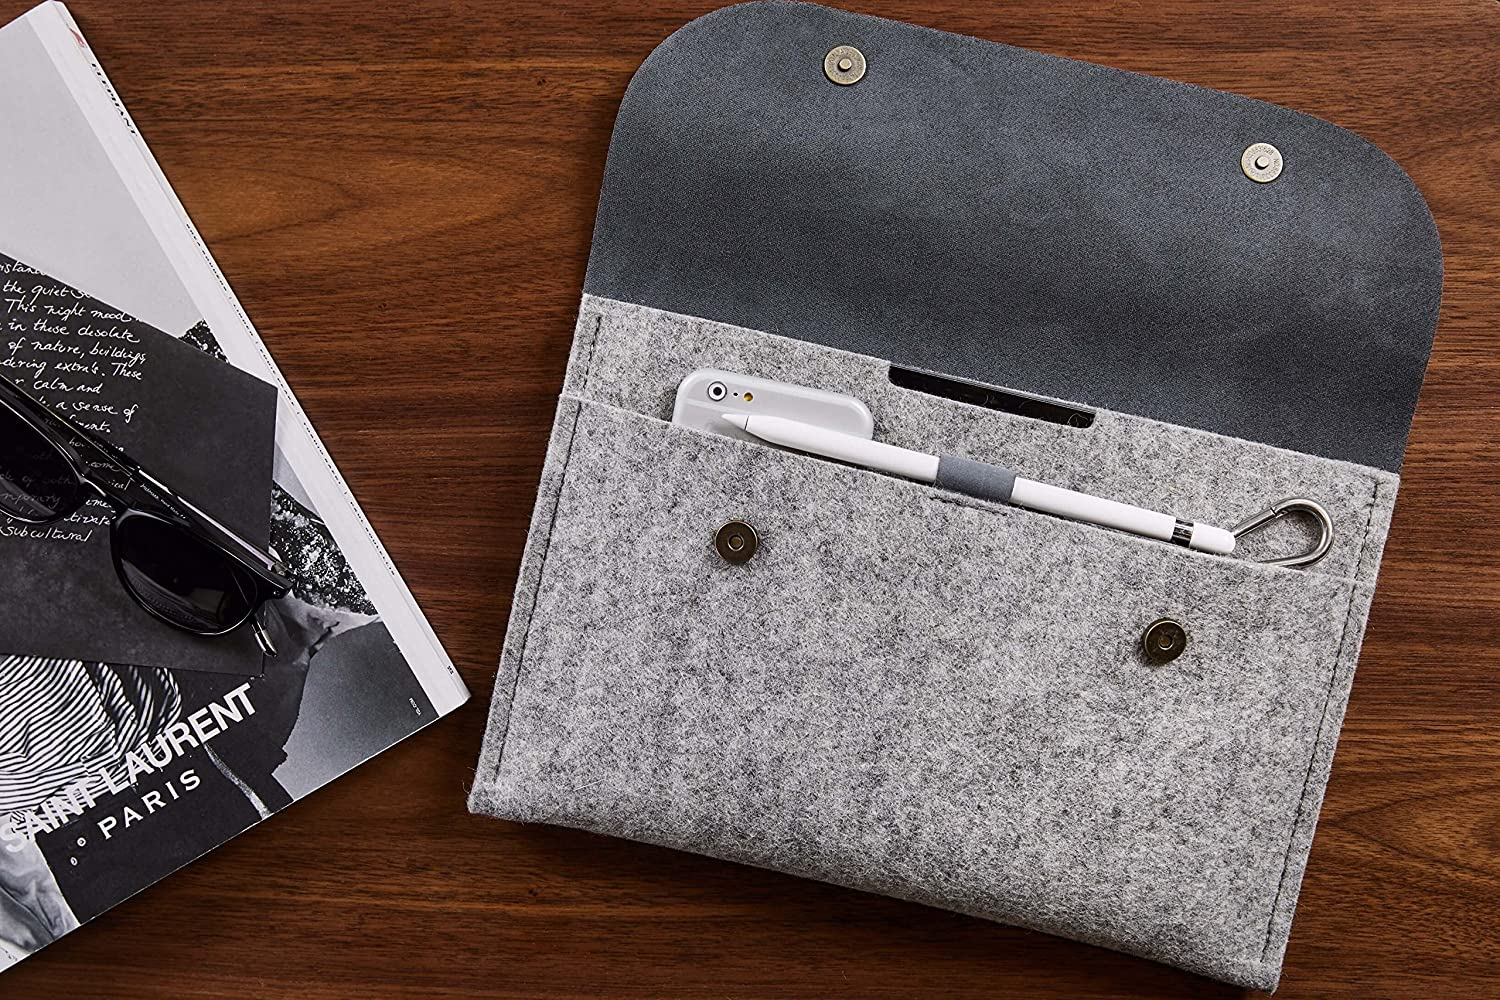 CitySheep Handmade Case Sleeve Cover Pouch for Apple iPad 10.5 iPad Pro 10.5 Computer Tablet Genuine Leather and Pure Wool Felt Grey 2 Compartments and Pencil Holder Scratch and Hit Protection